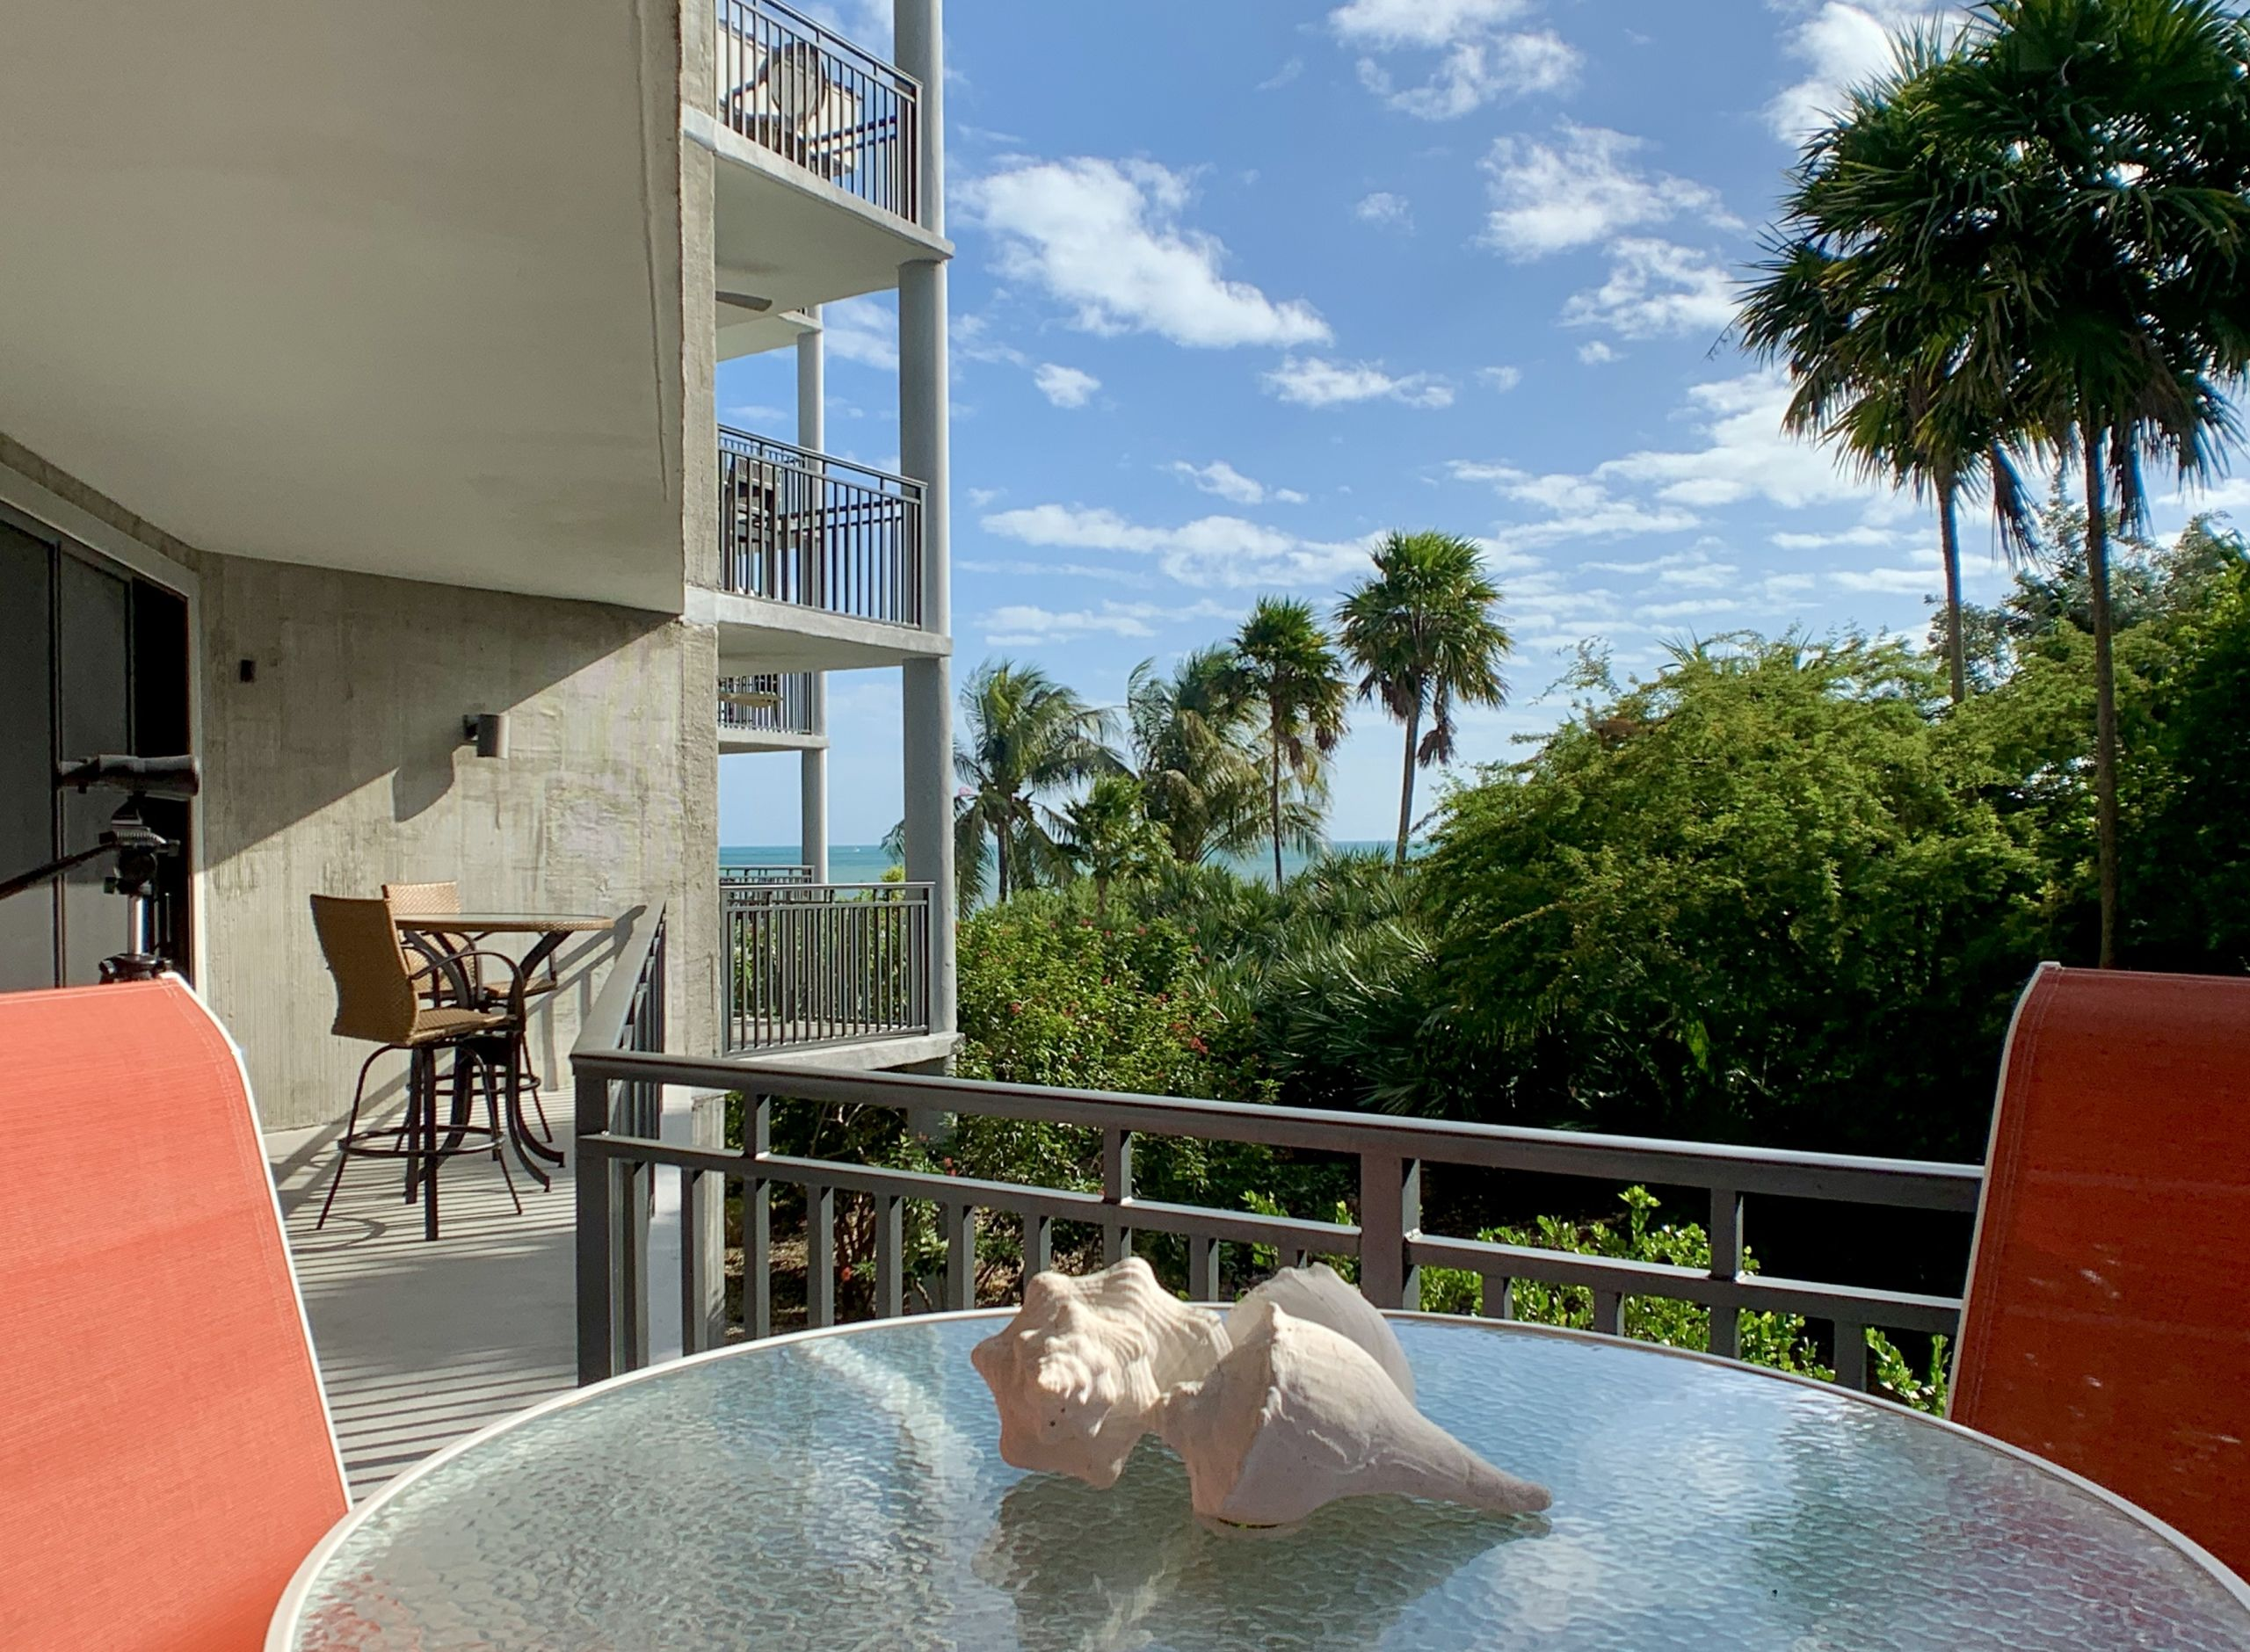 New Lower Price - 1800 Atlantic Blvd., A104, Key West